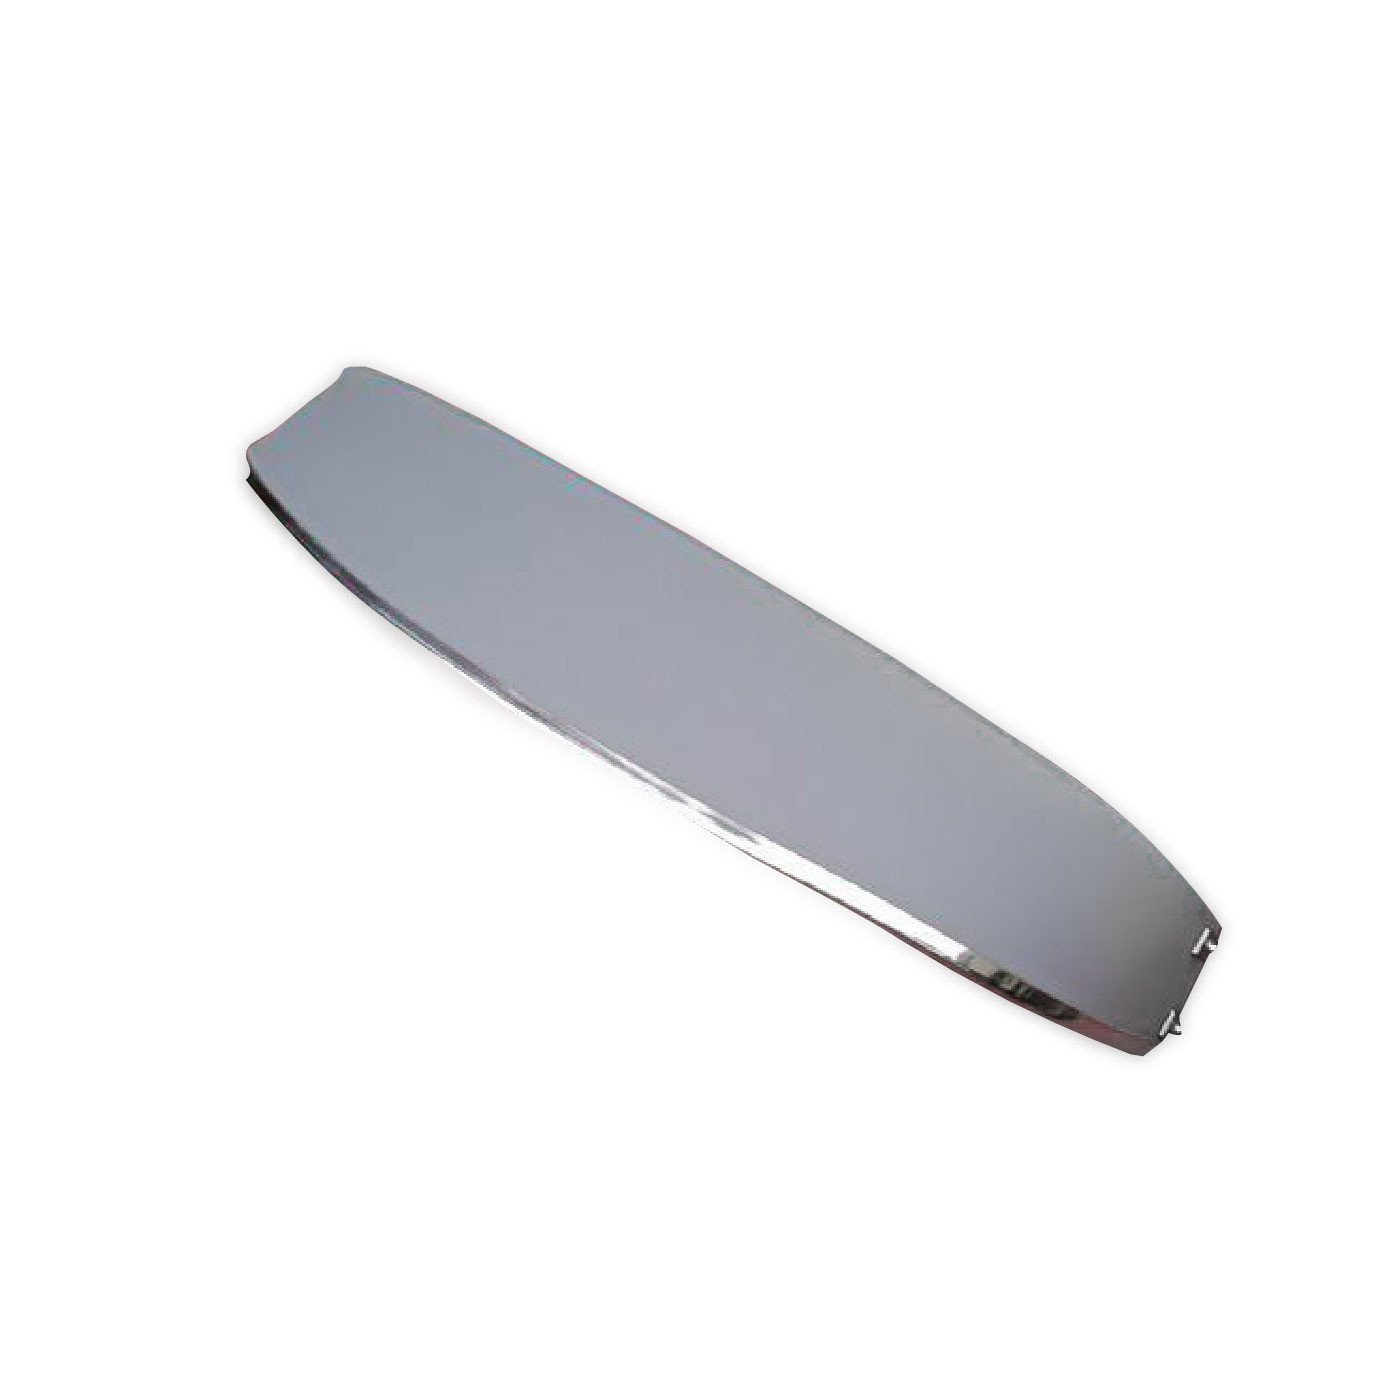 SOLID METAL SUNVISOR FOR FORD F100/250/350/BRONCO/F150